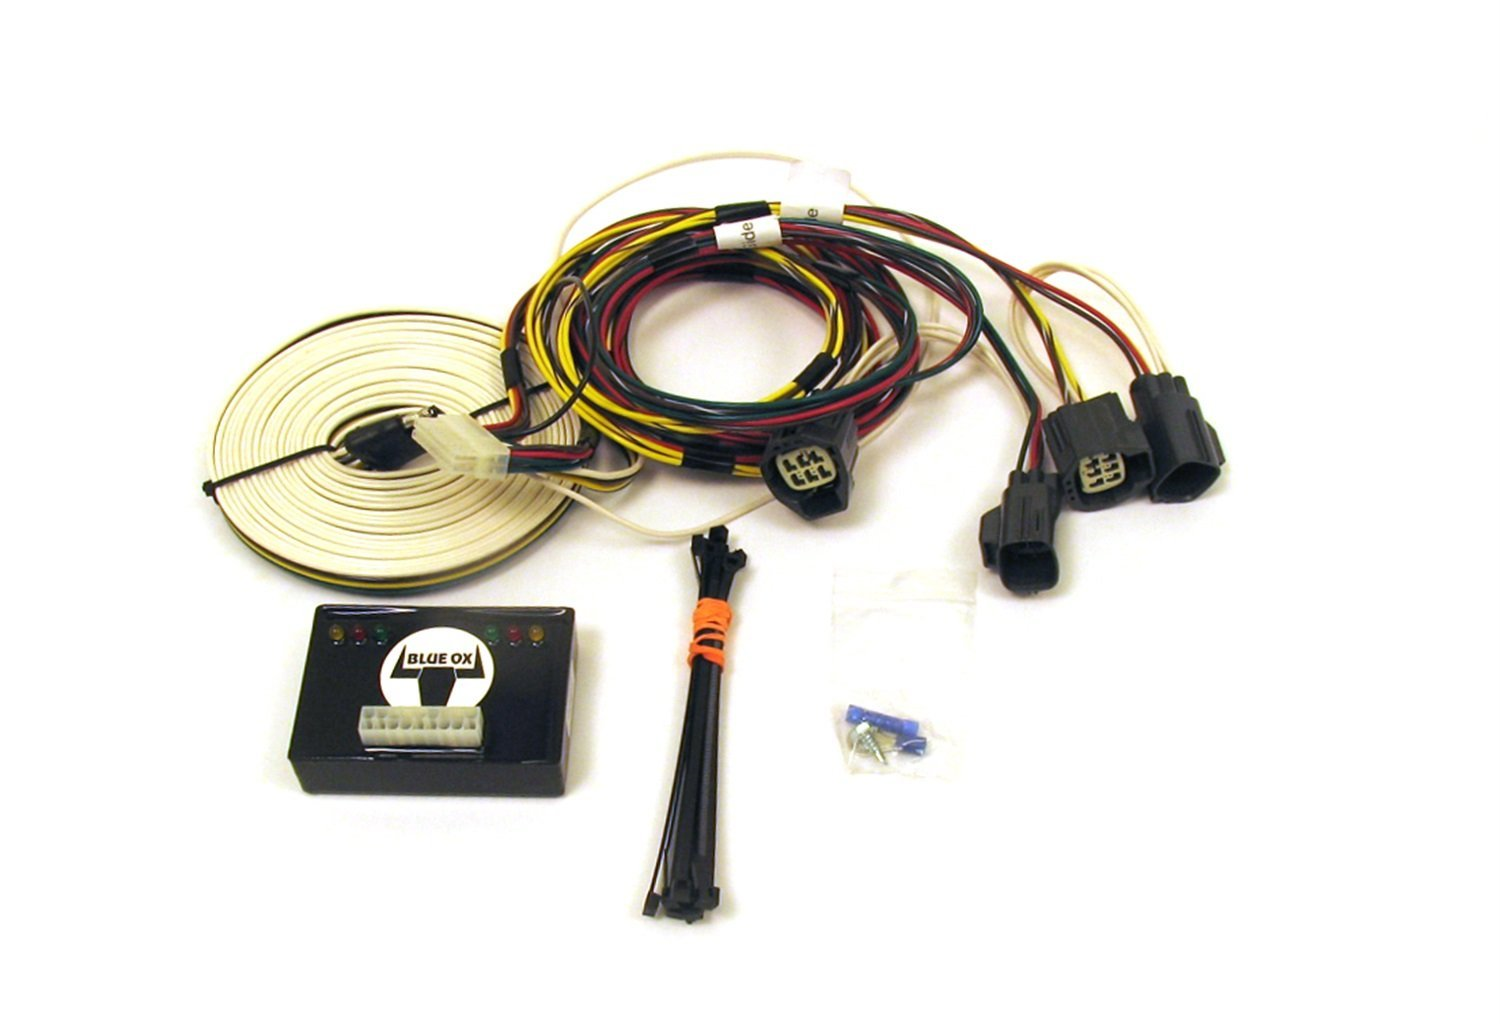 174010 blue ox ez light wiring harness kit for jeep rubicon wrangler bx8 blue ox wiring harness at reclaimingppi.co